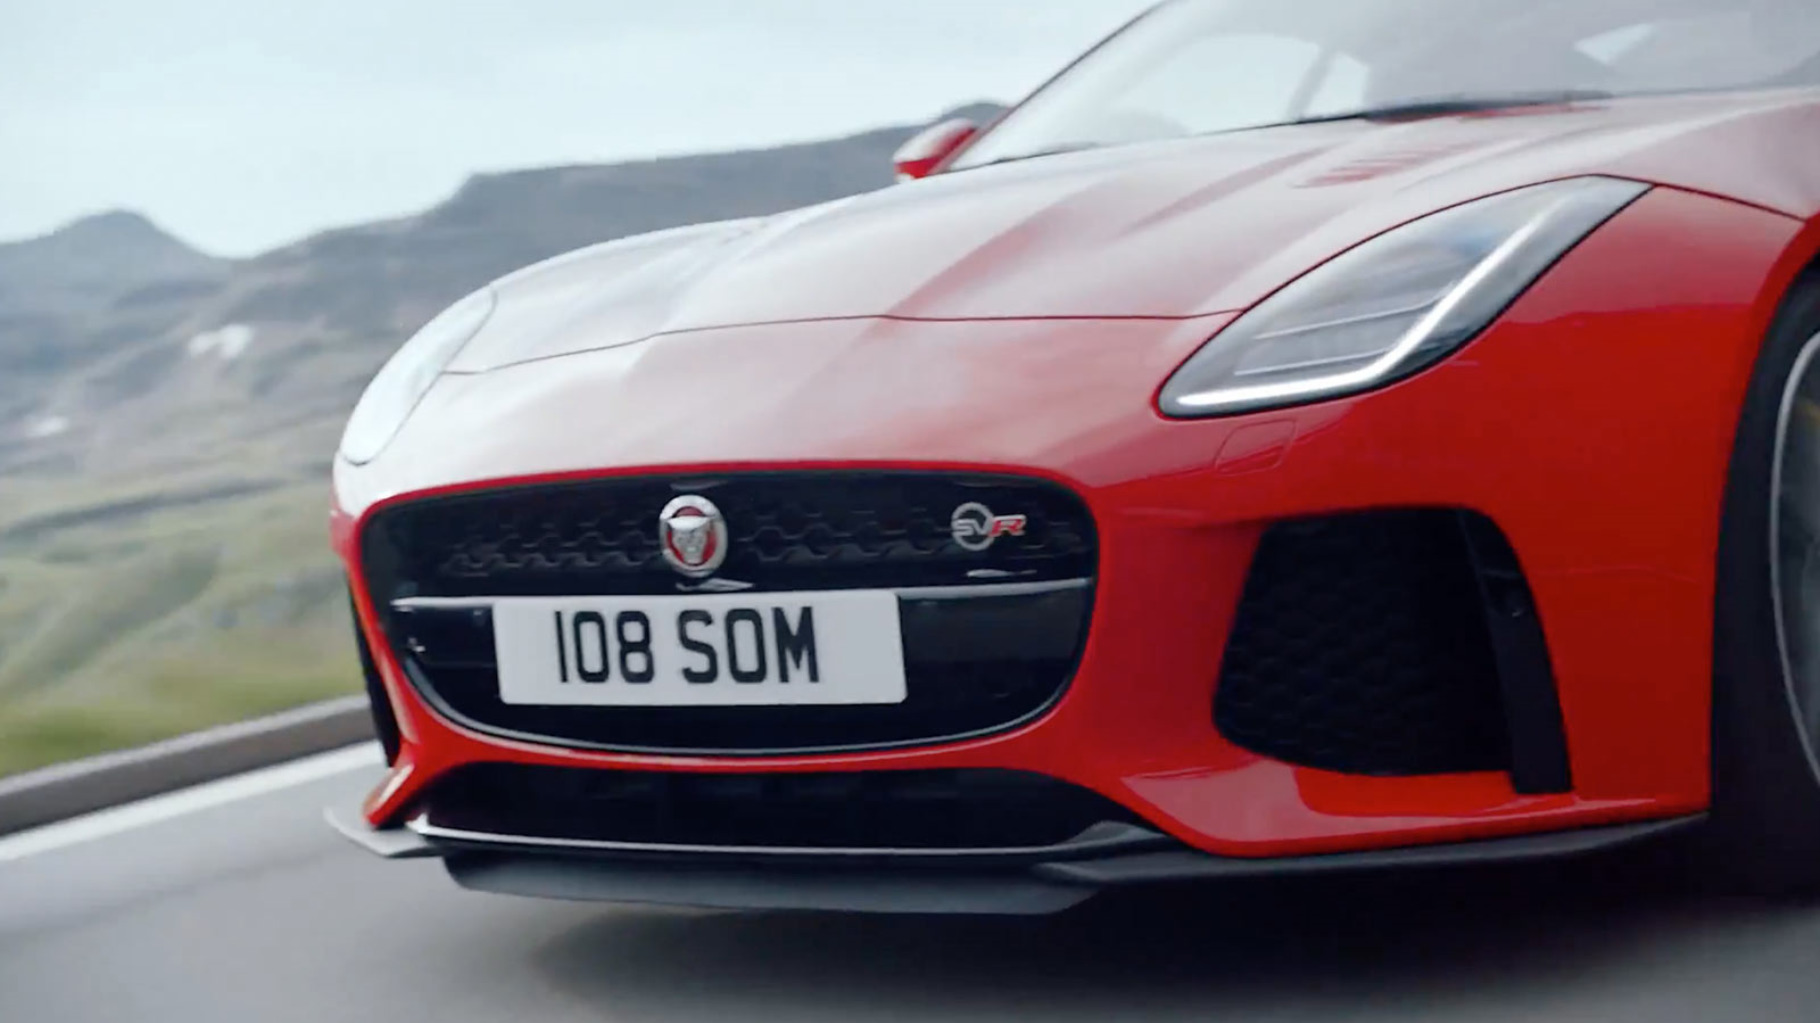 A close up of the front of a jaguar f-type as it drived along a road.